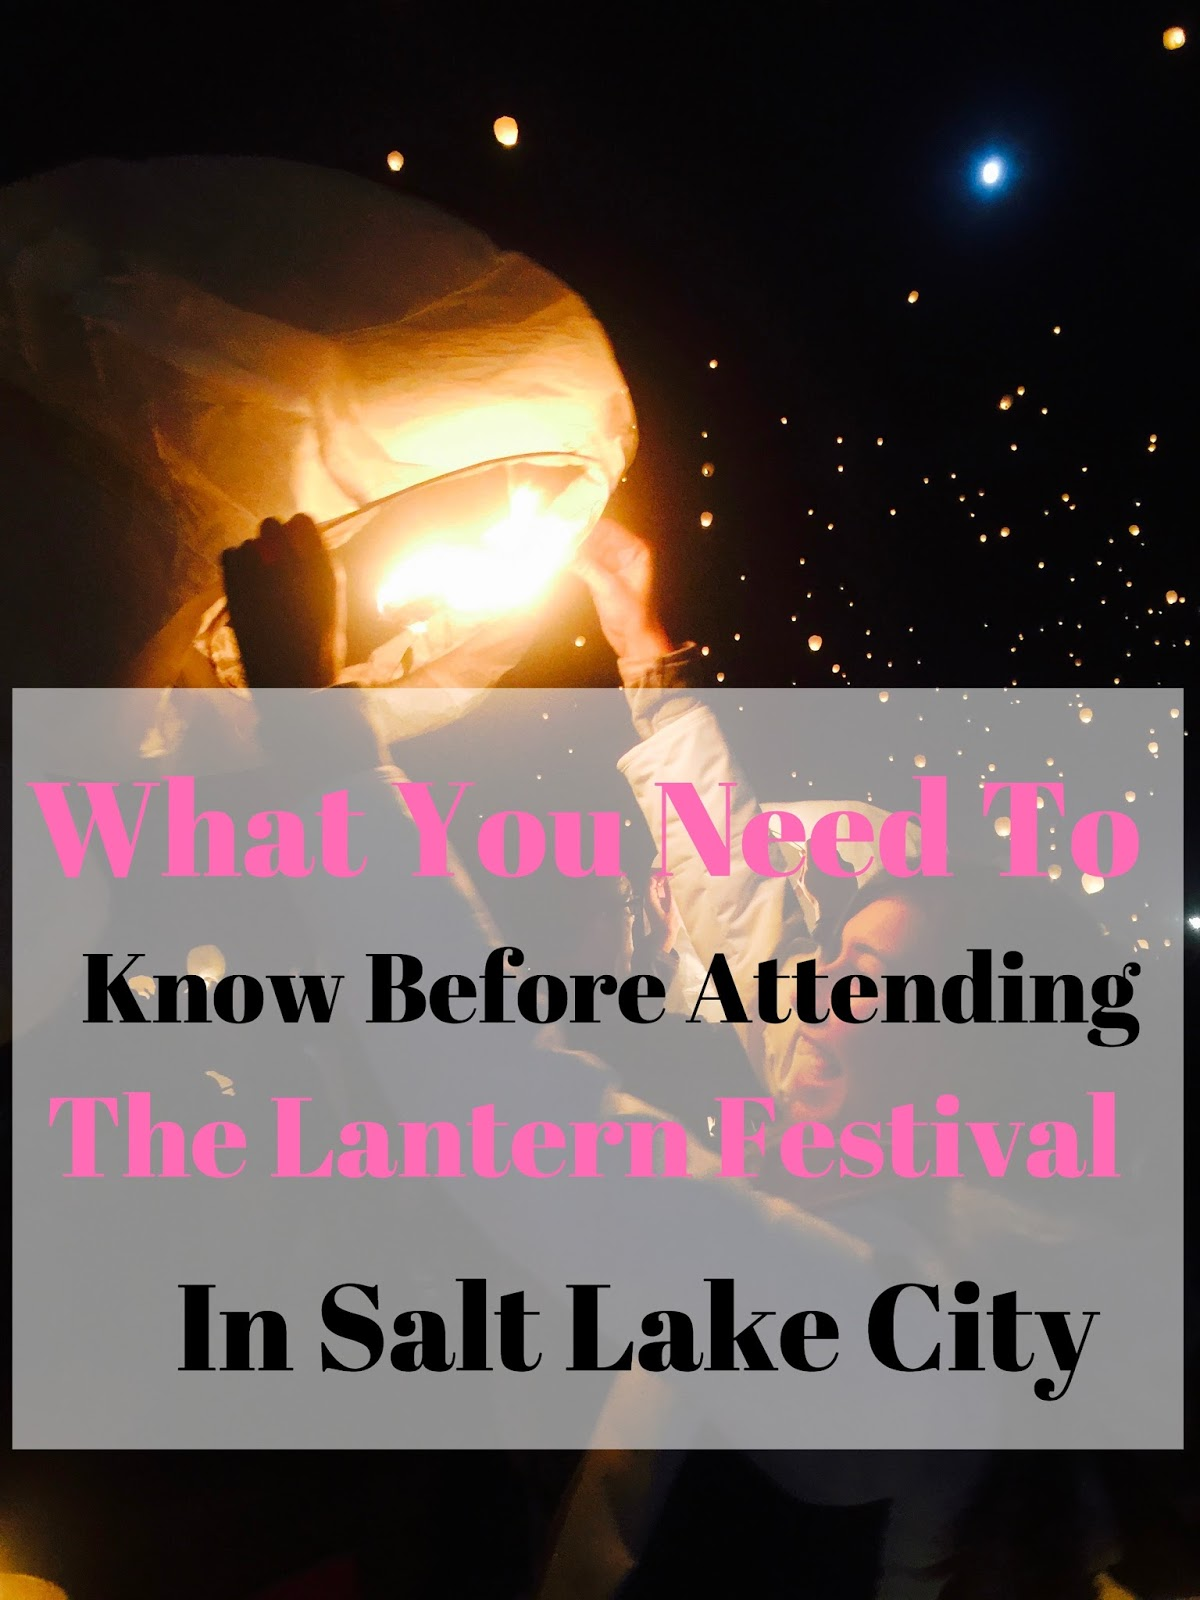 salt lake city, things to do in slc, things to do in salt lake city, utah activities, the lantern festival, tips for the lantern festival, festival, lanterns, fire,